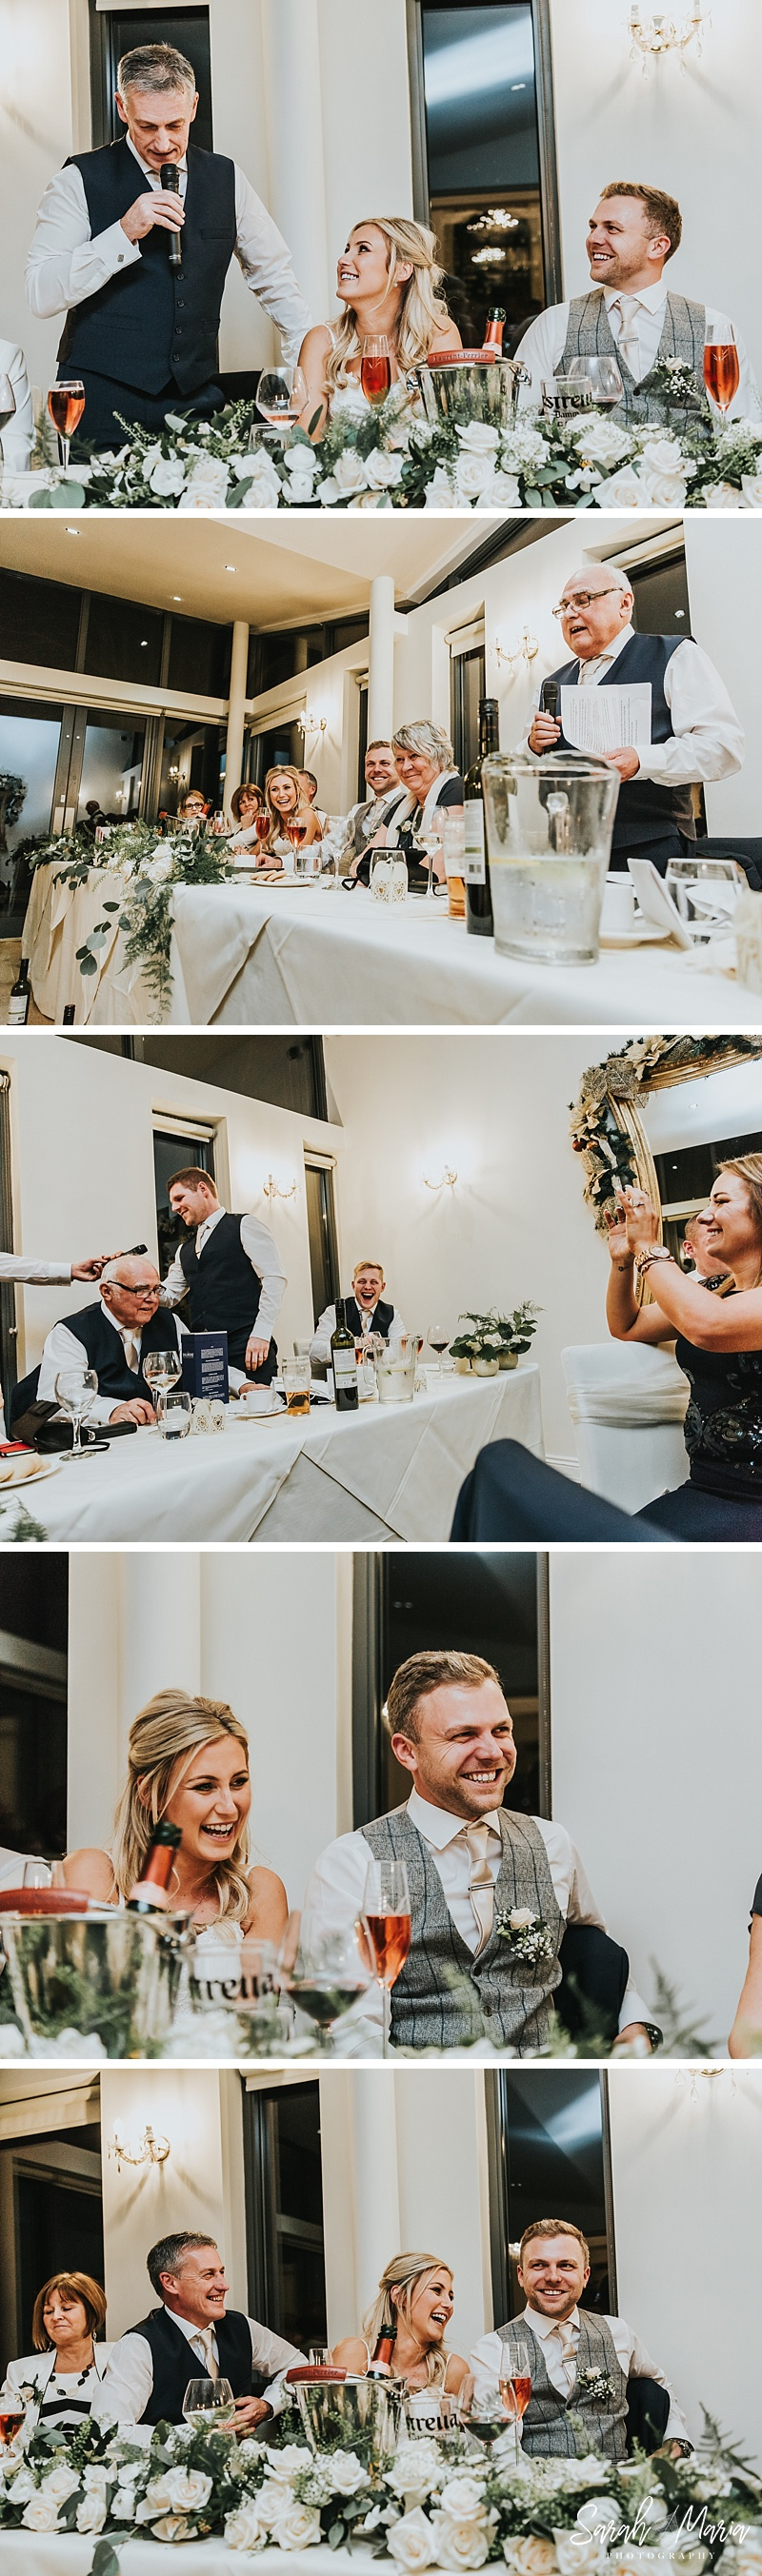 wedding speeches showing everyone laughing